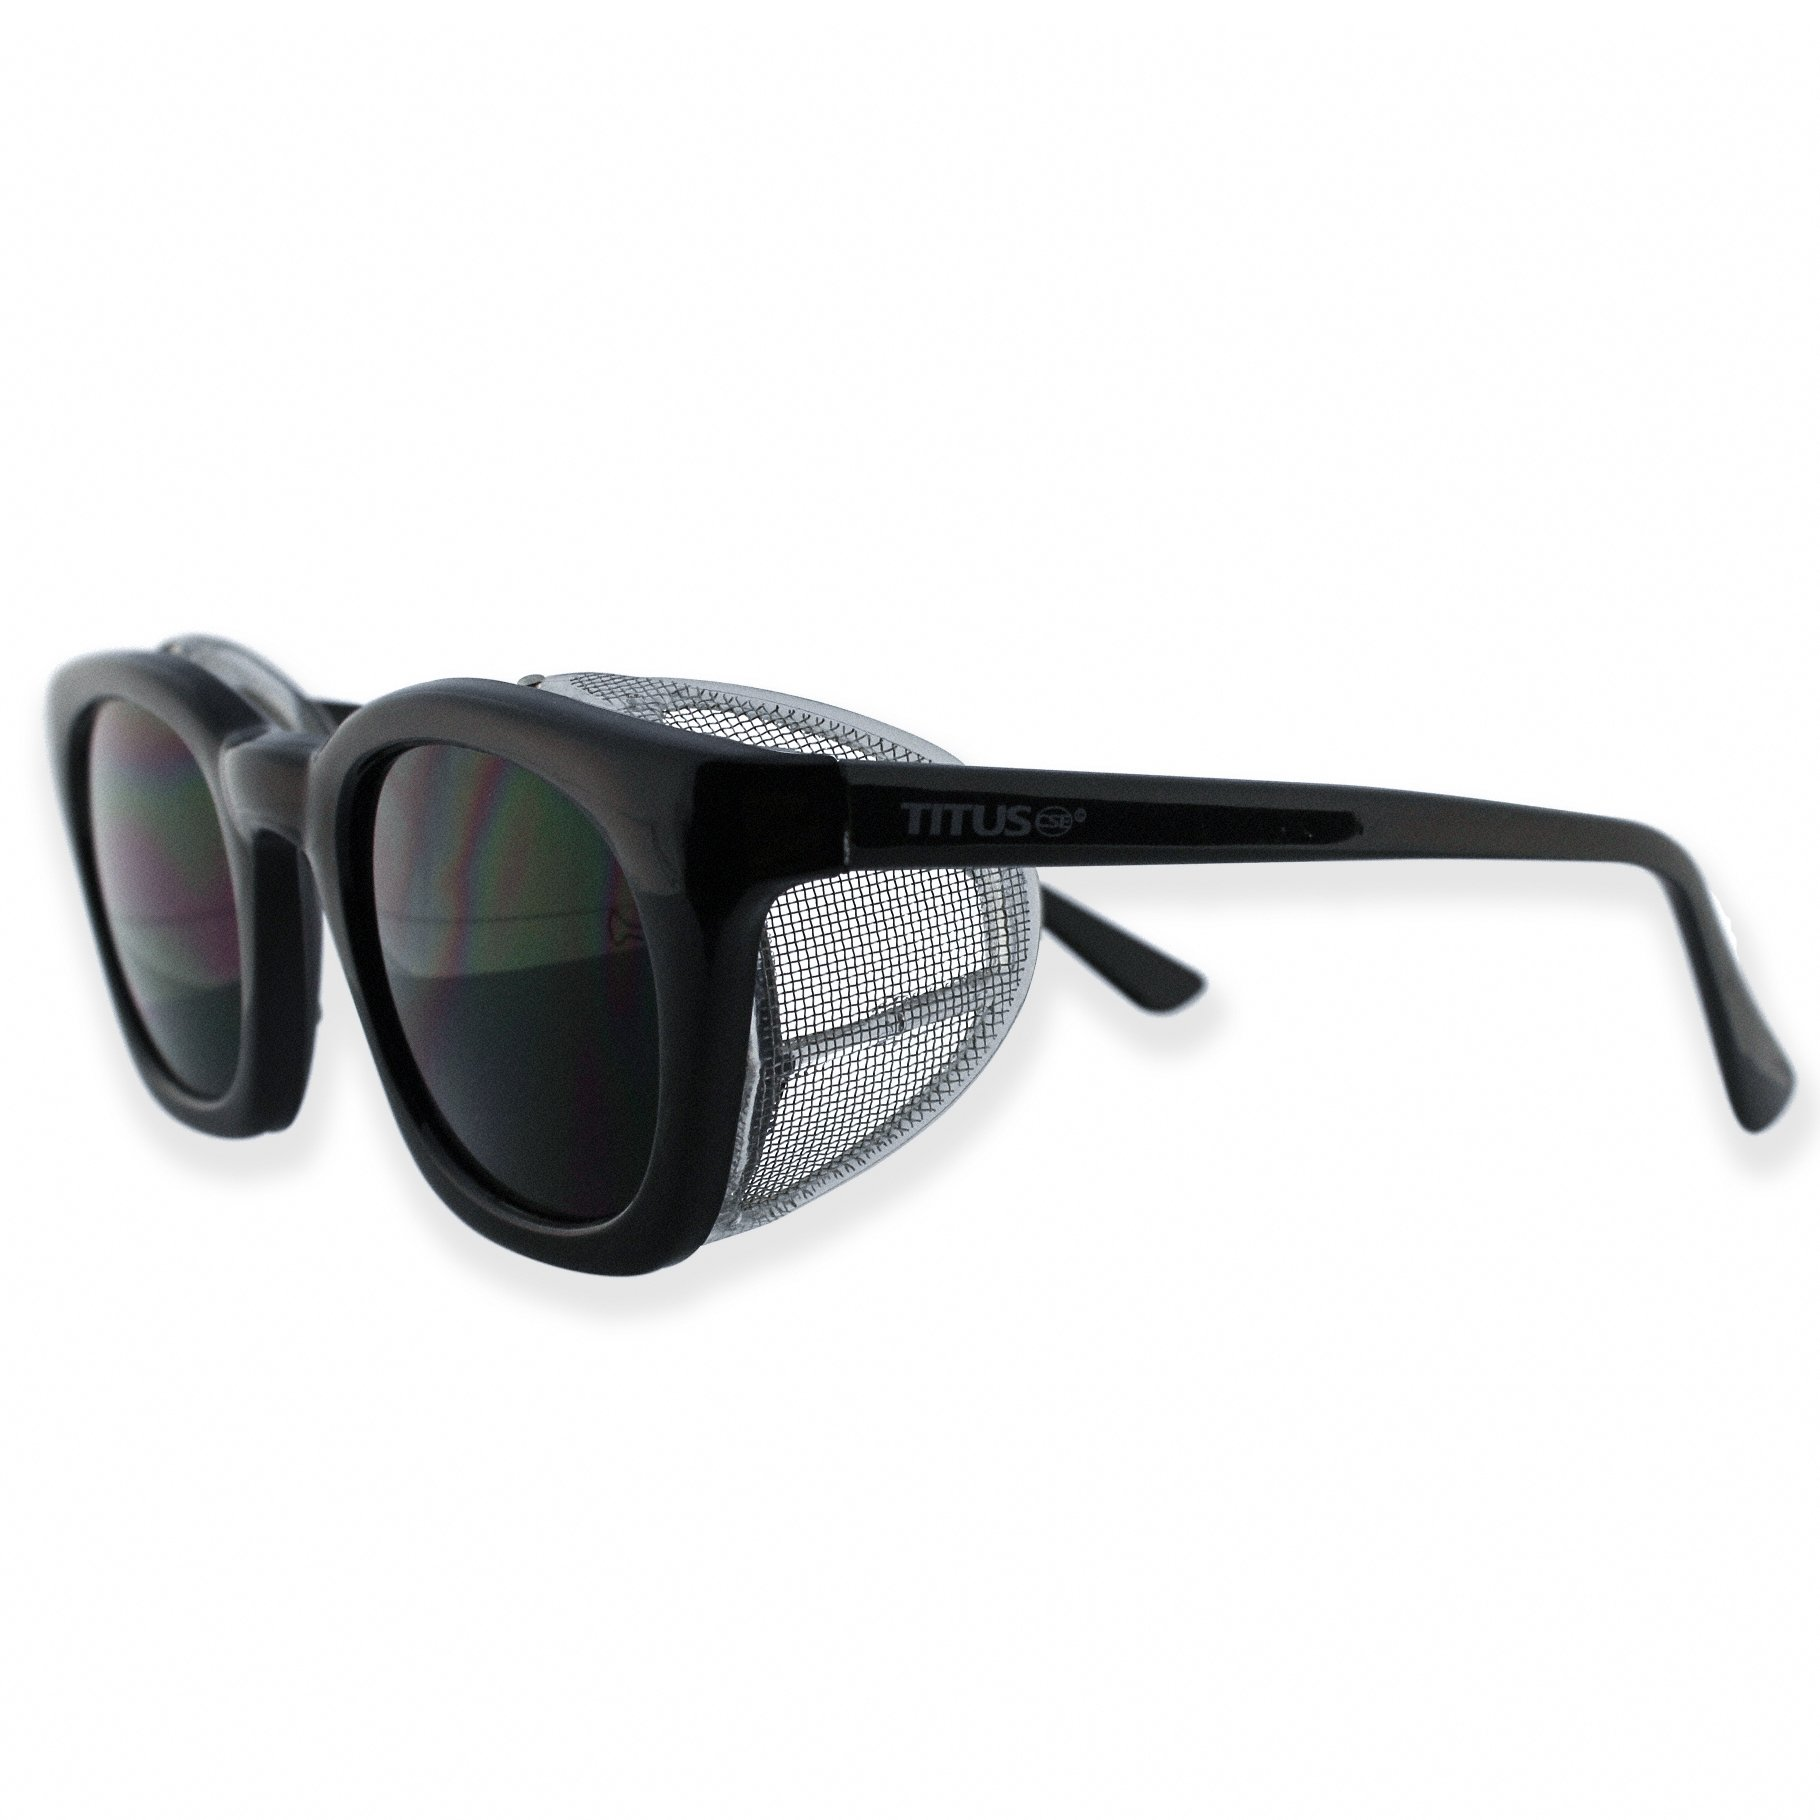 Retro Style Safety Glasses with Side Shield w//o Pouch, Clear Lens - Matte Frame TITUS